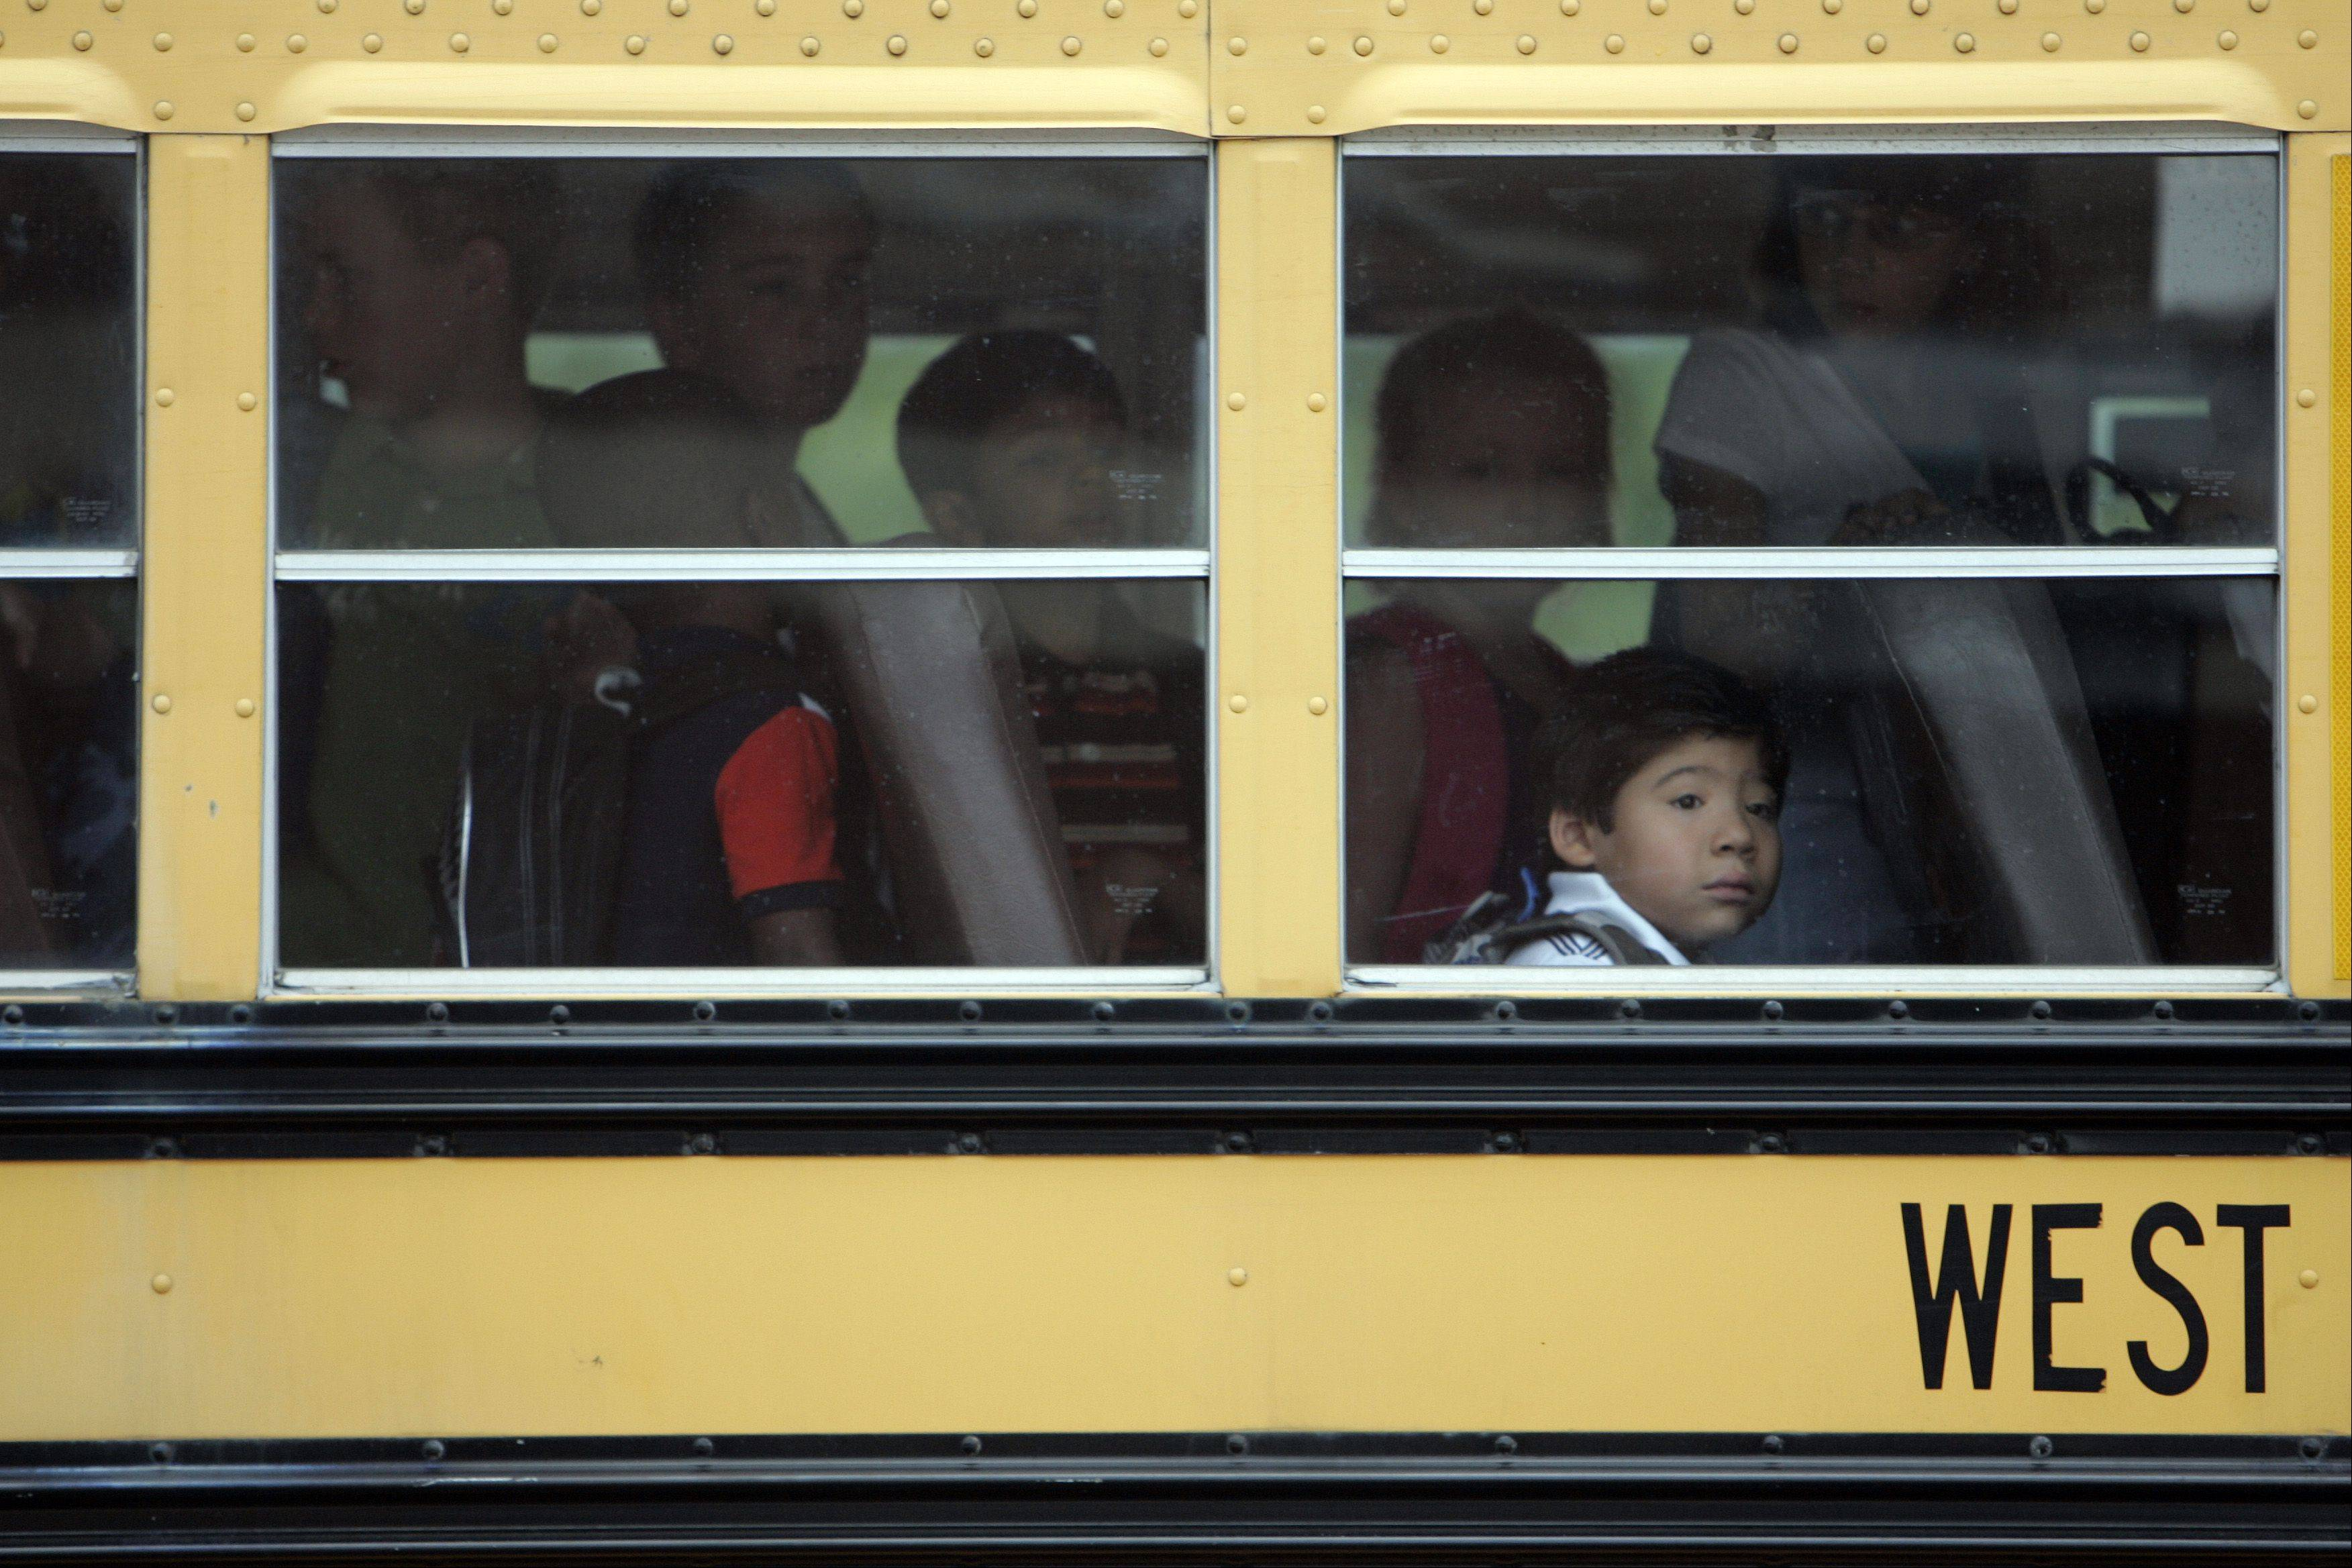 Seven-year-old Gabriel Morales waits patiently to get off the school bus for first grade during the first day of school at Fearn Elementary School in North Aurora Wednesday August 15, 2012.